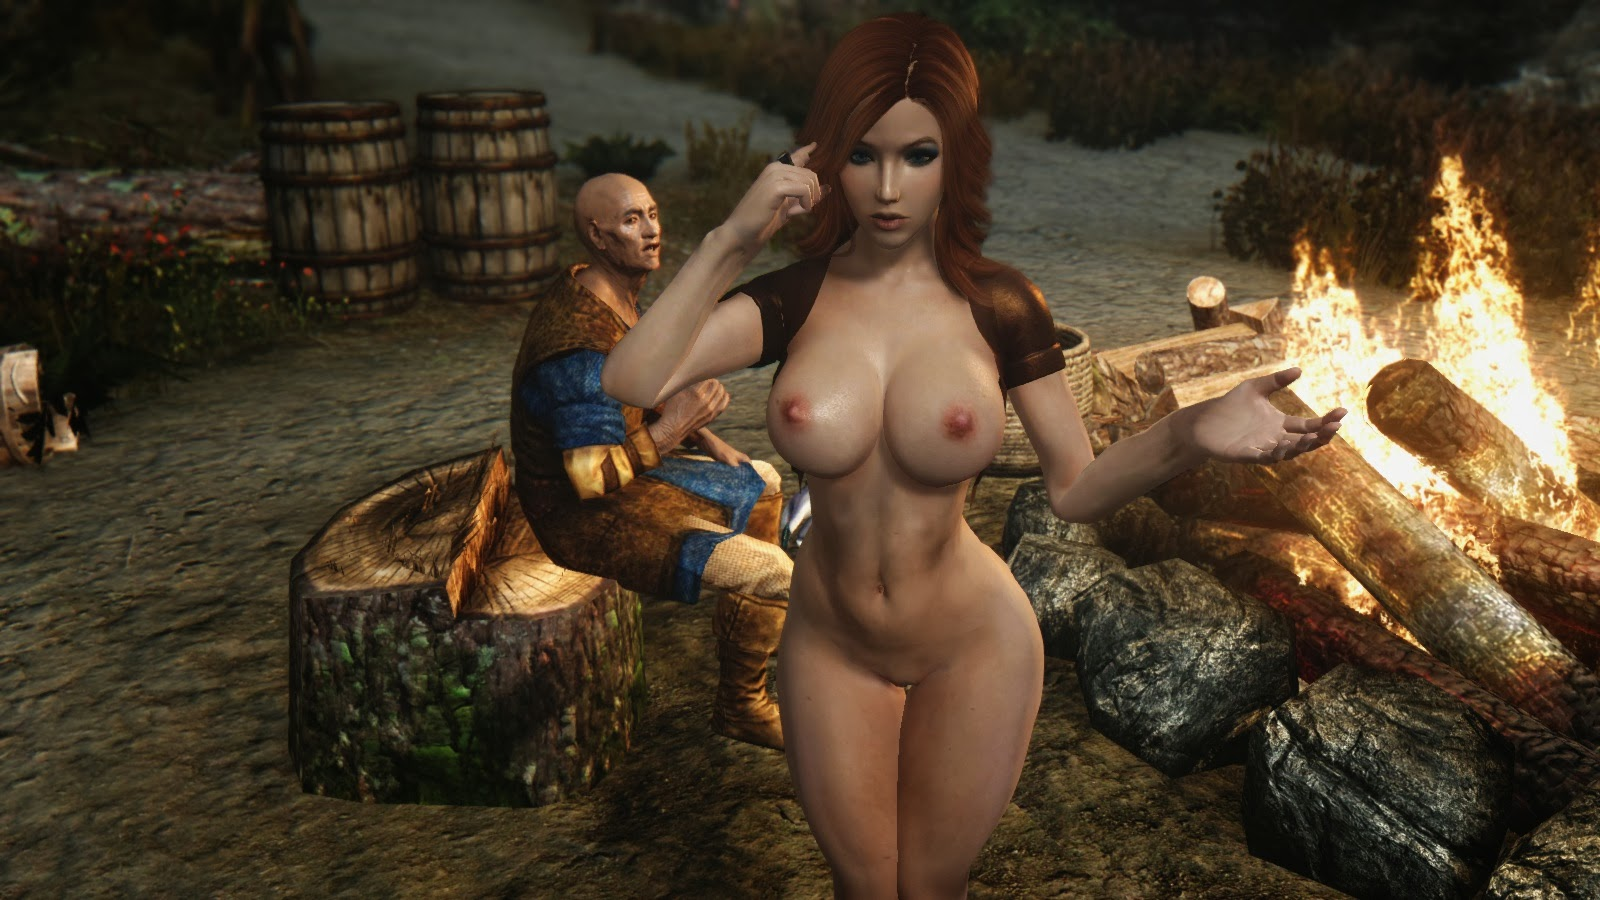 Nude patch in skyrim sexy pics